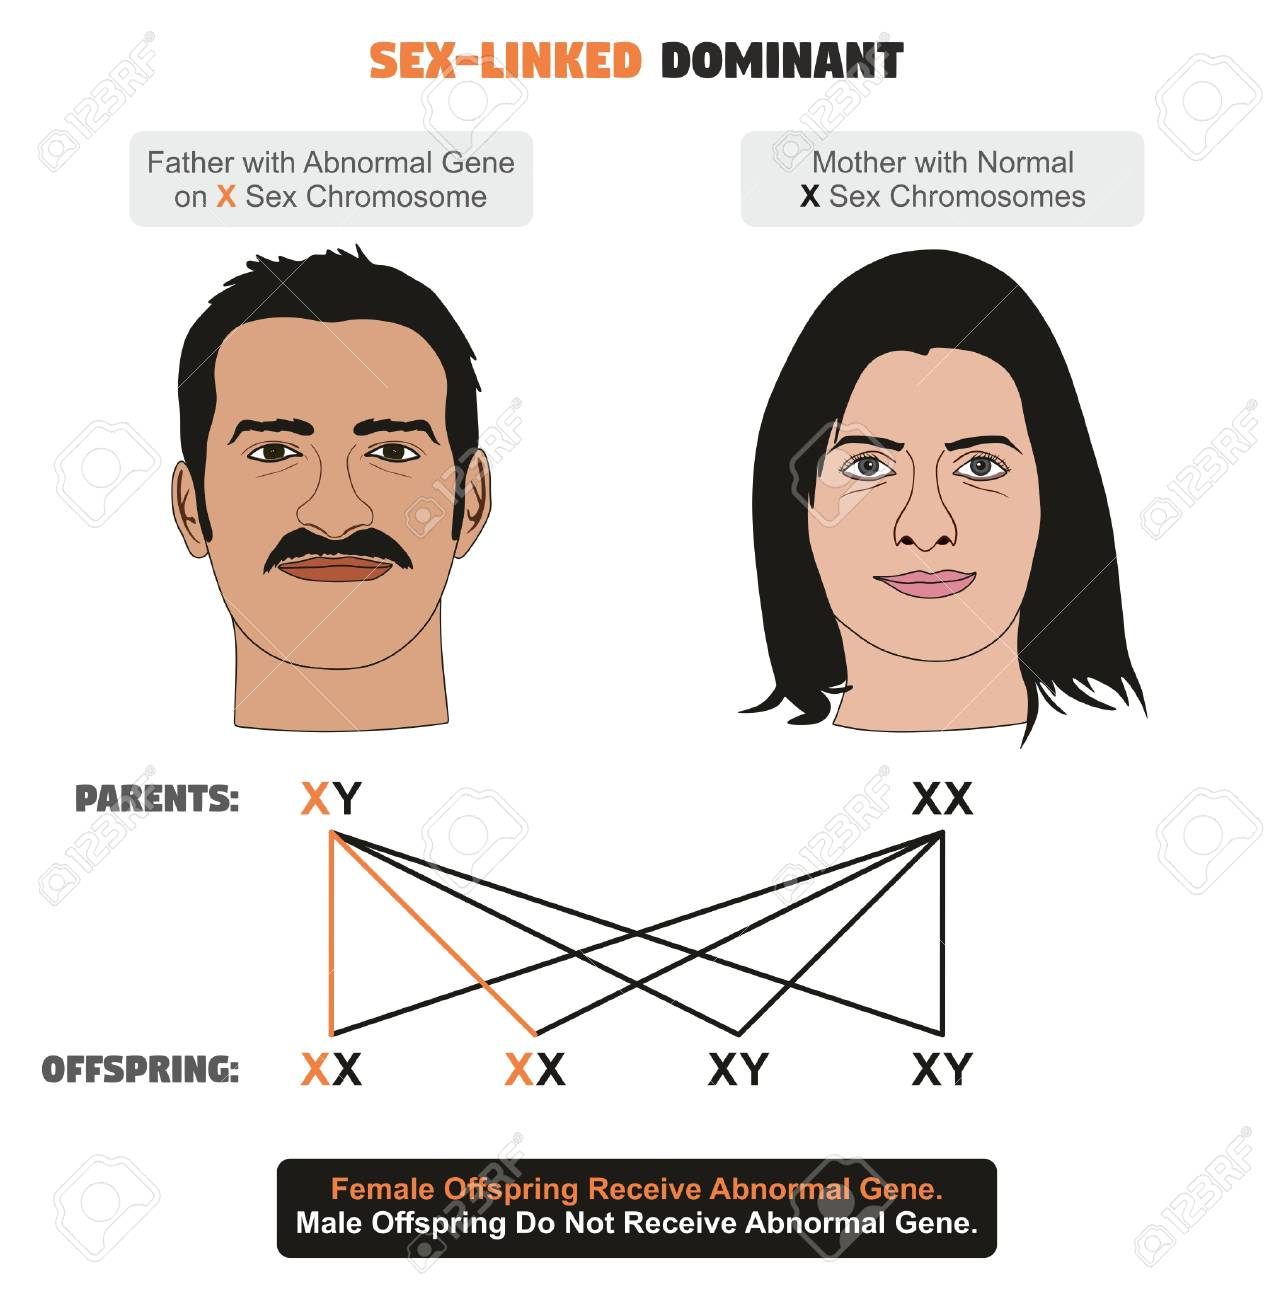 hight resolution of sex linked dominant hereditary trait infographic diagram showing father with abnormal gene on x sex